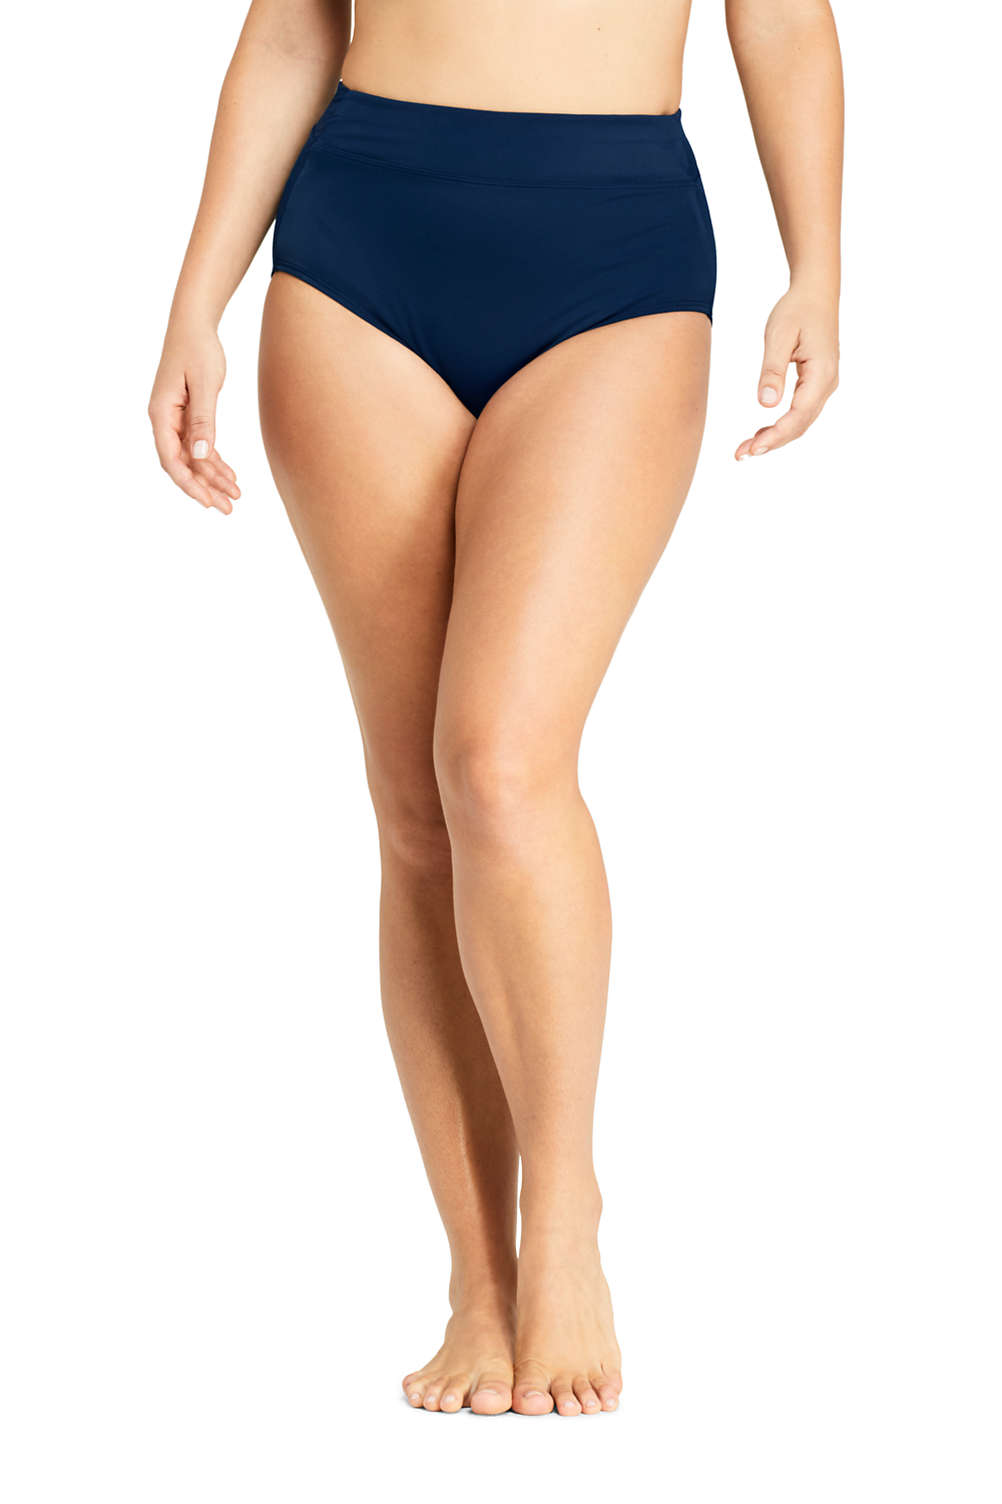 d20047d744 Women's Chlorine Resistant Plus Size High Waisted Bikini Bottoms with Tummy  Control from Lands' End